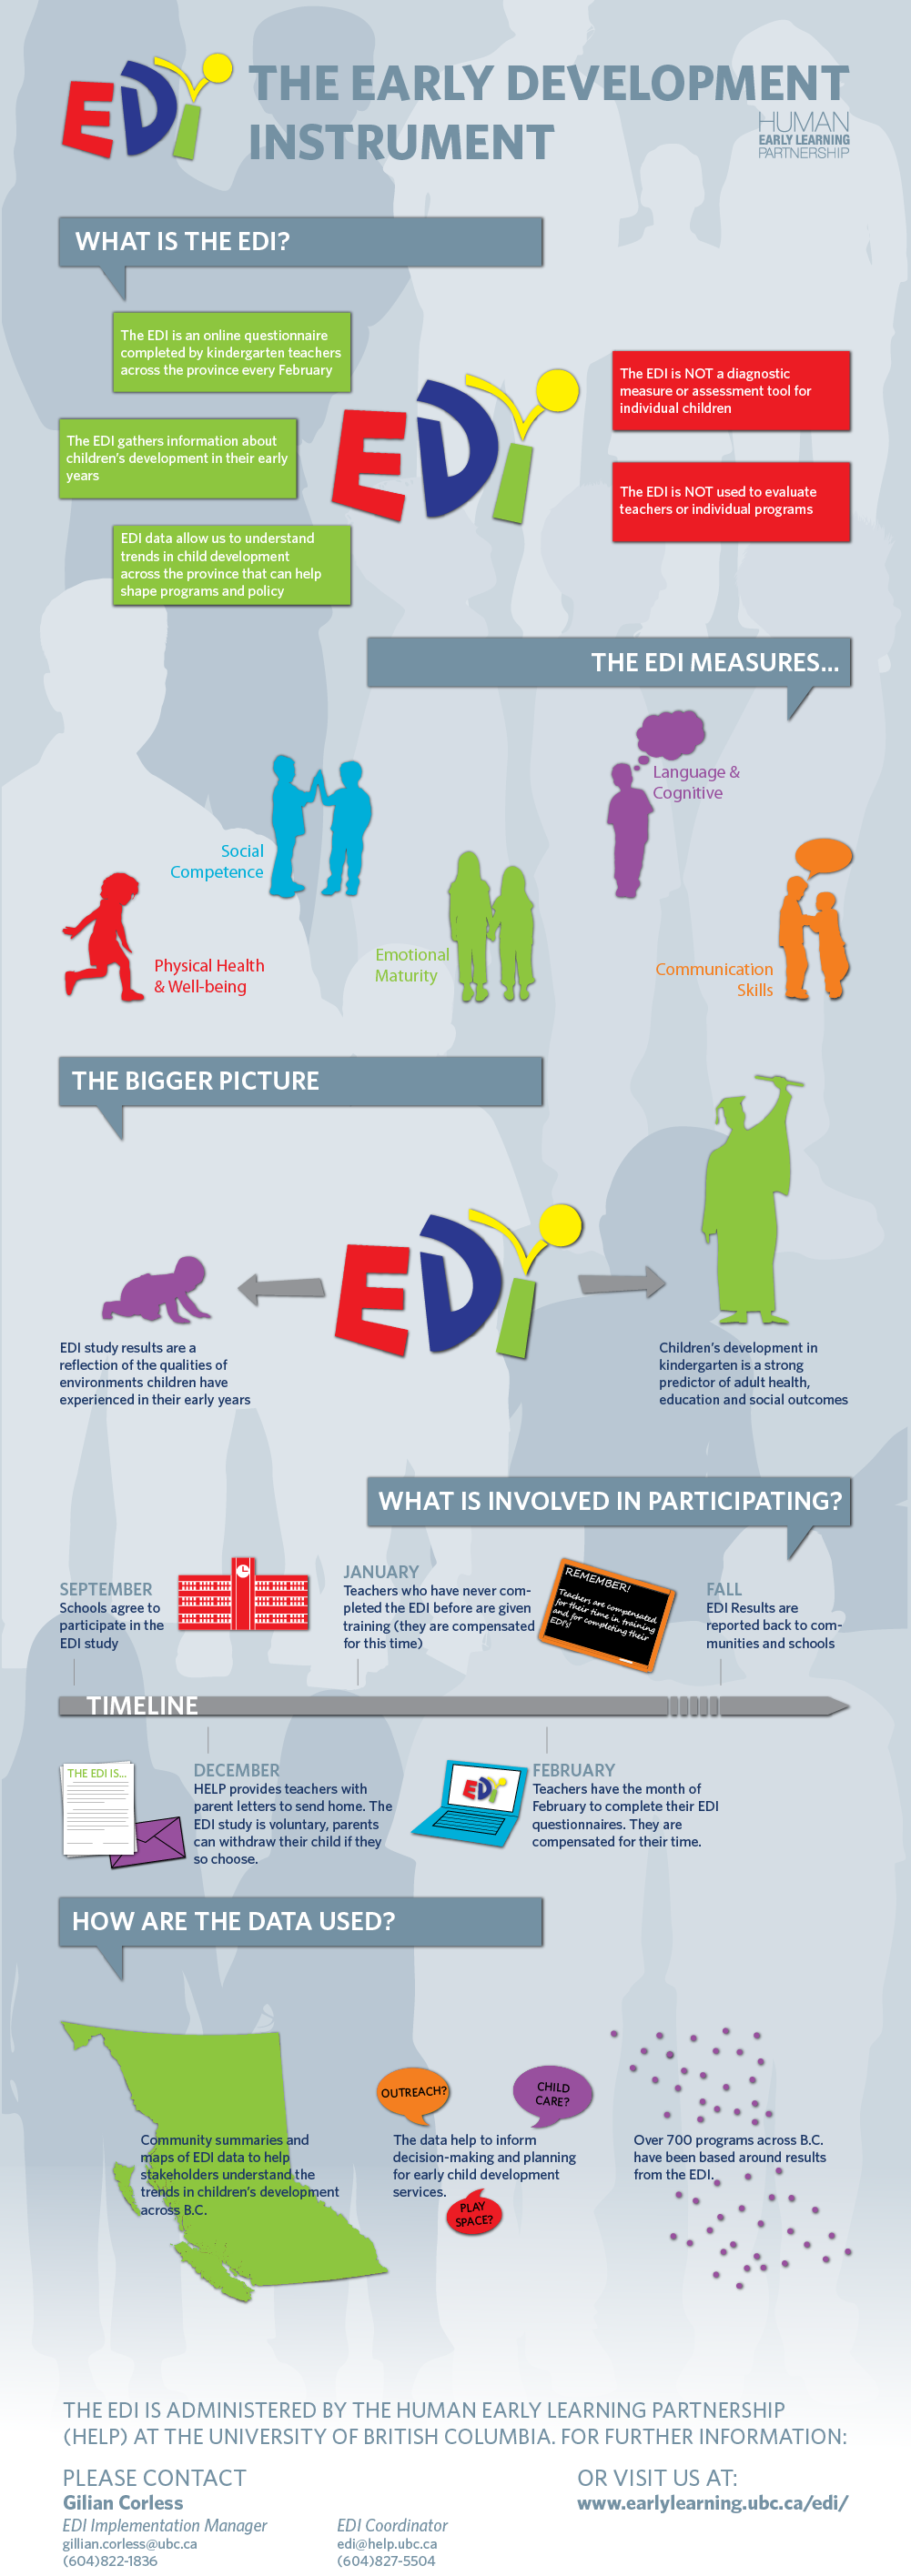 An infographic to help introduce the EDI